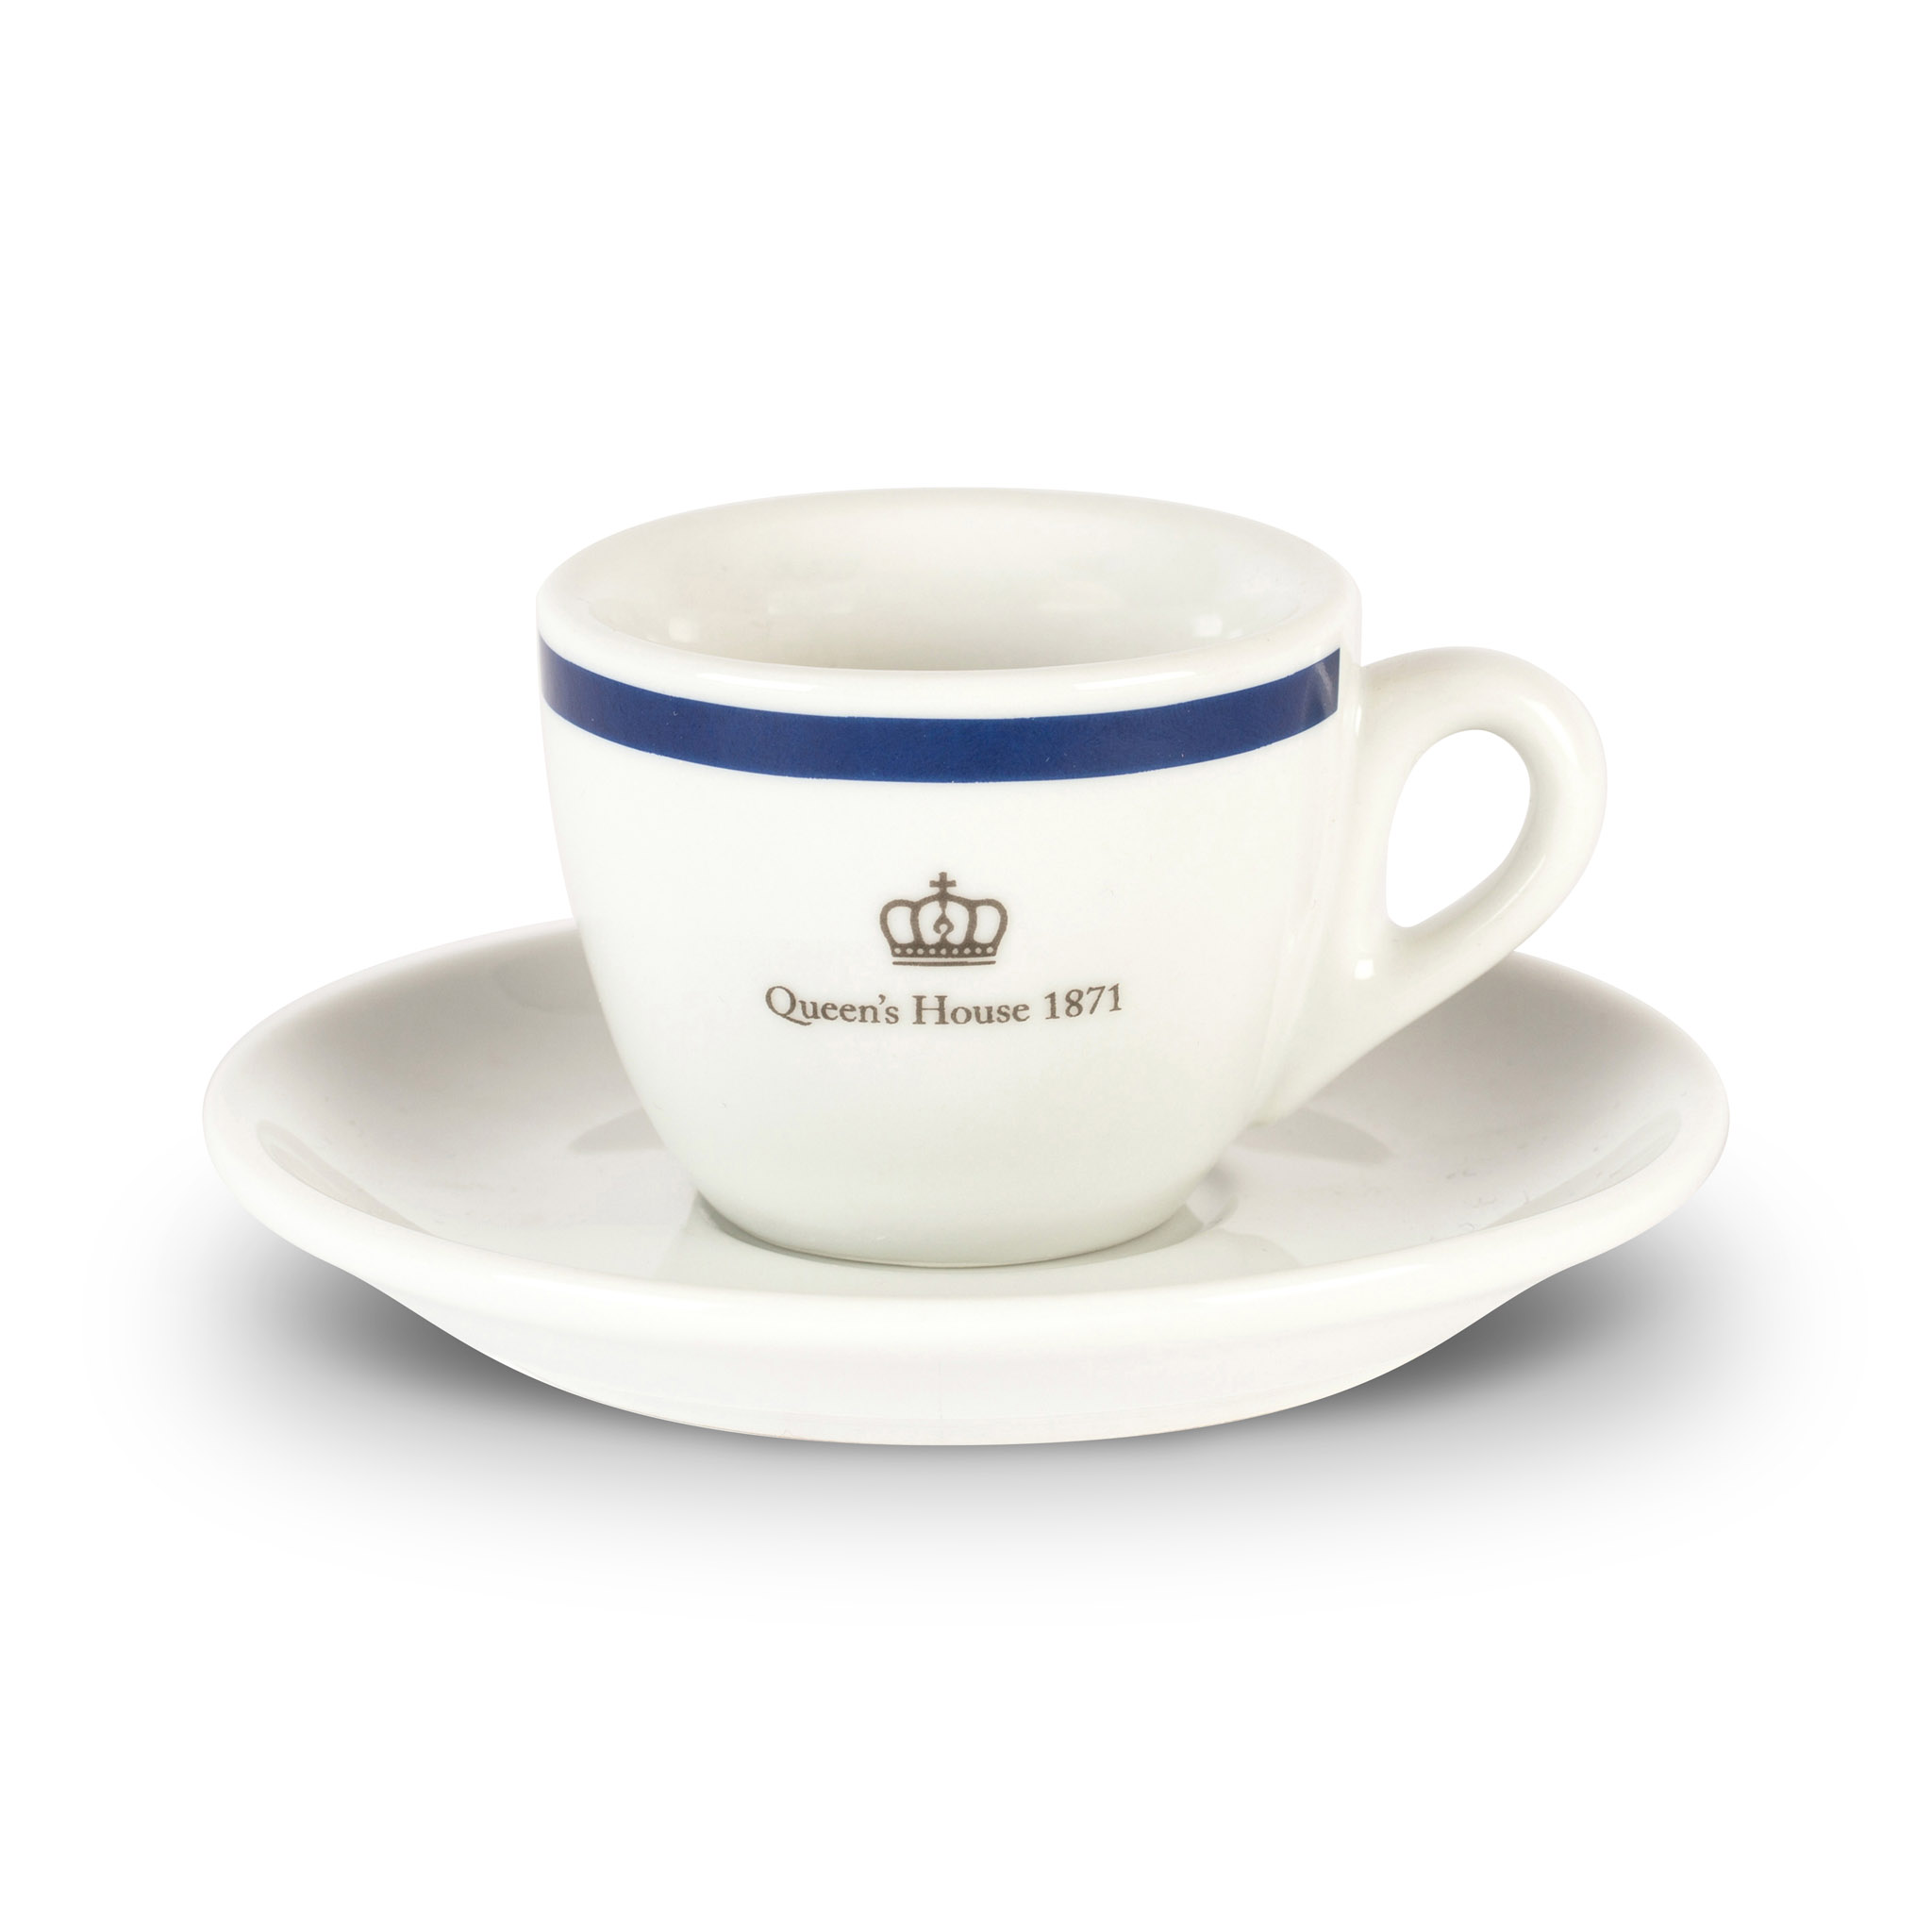 Queen's House espresso cup and saucer